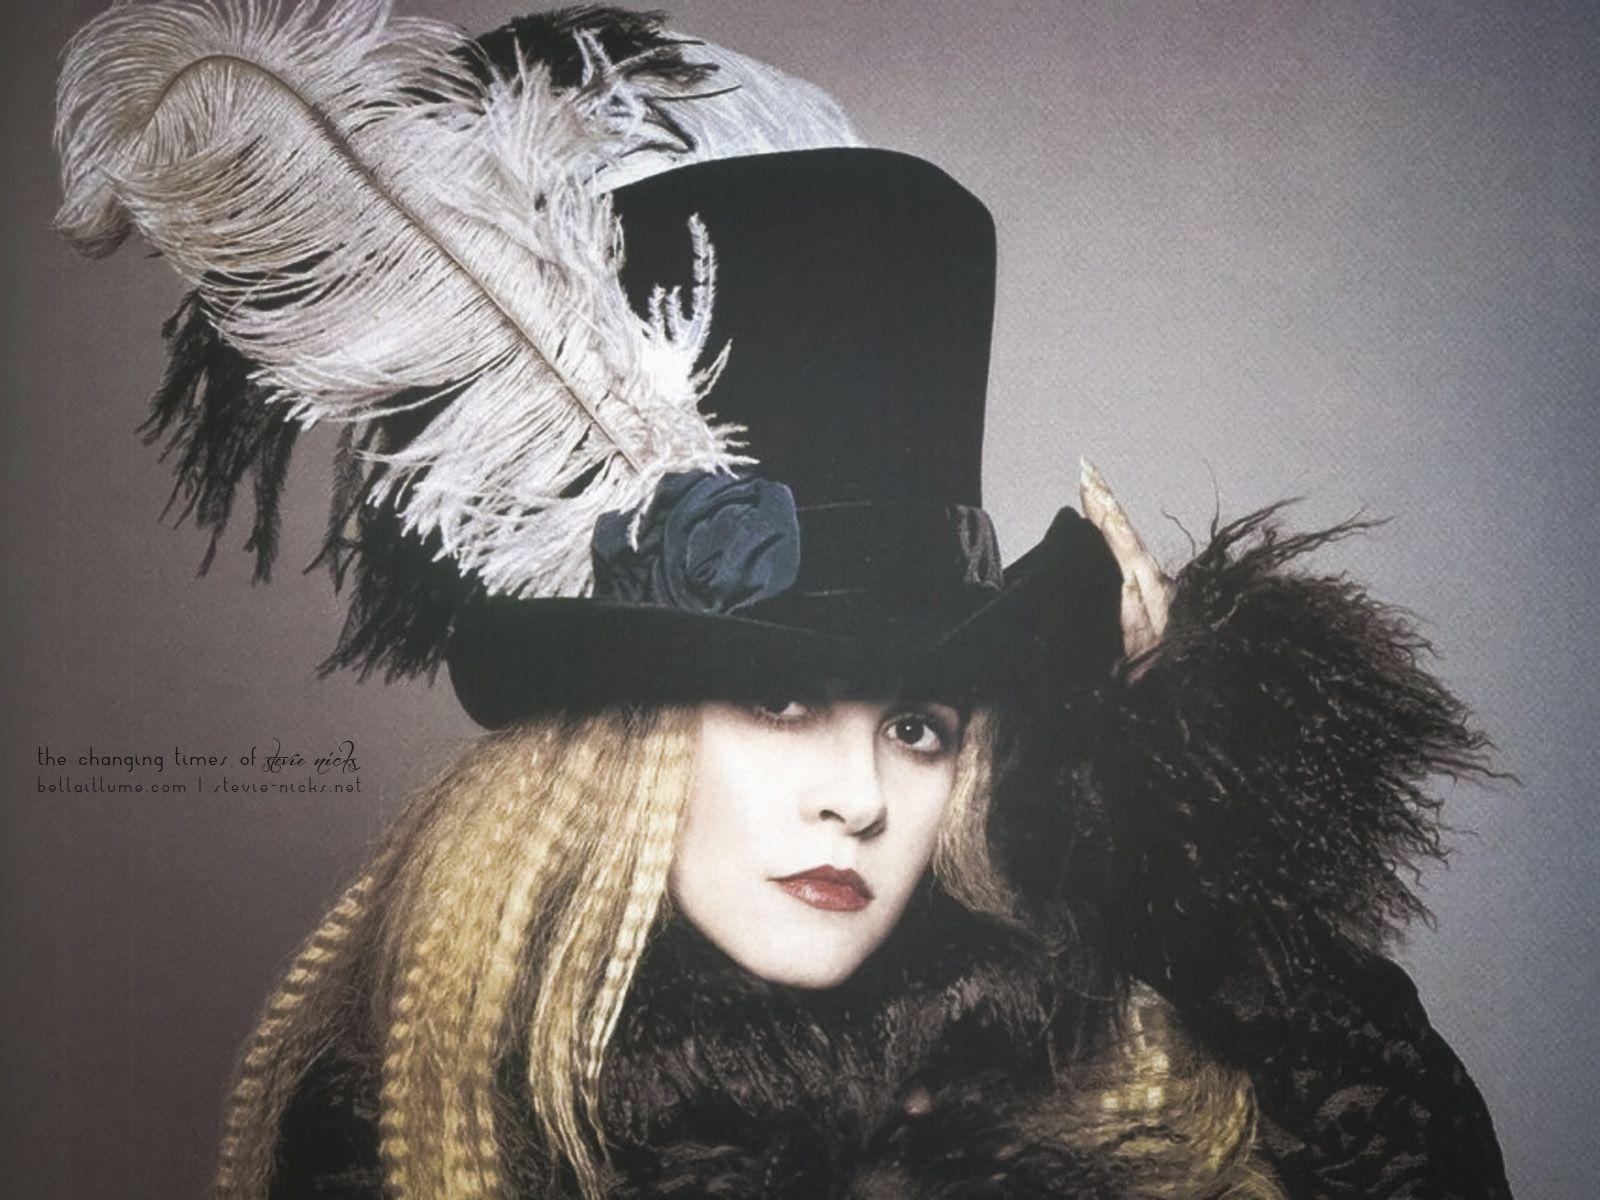 stevie nicks: the site. wallpapers